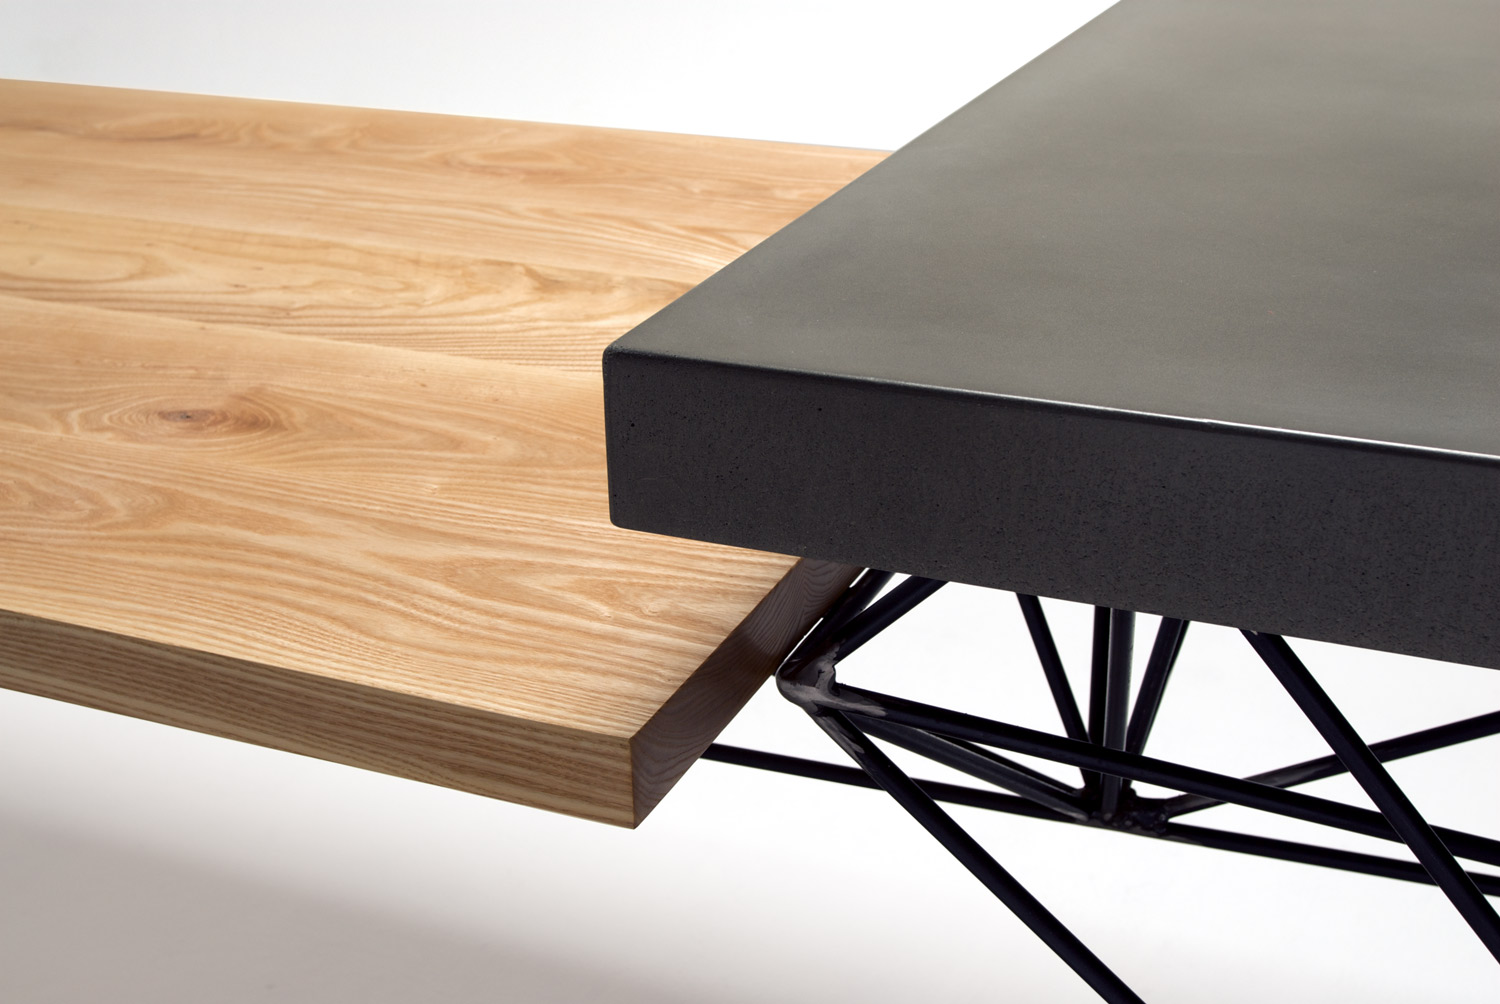 detail of a concrete, wood, and steel contemporary table